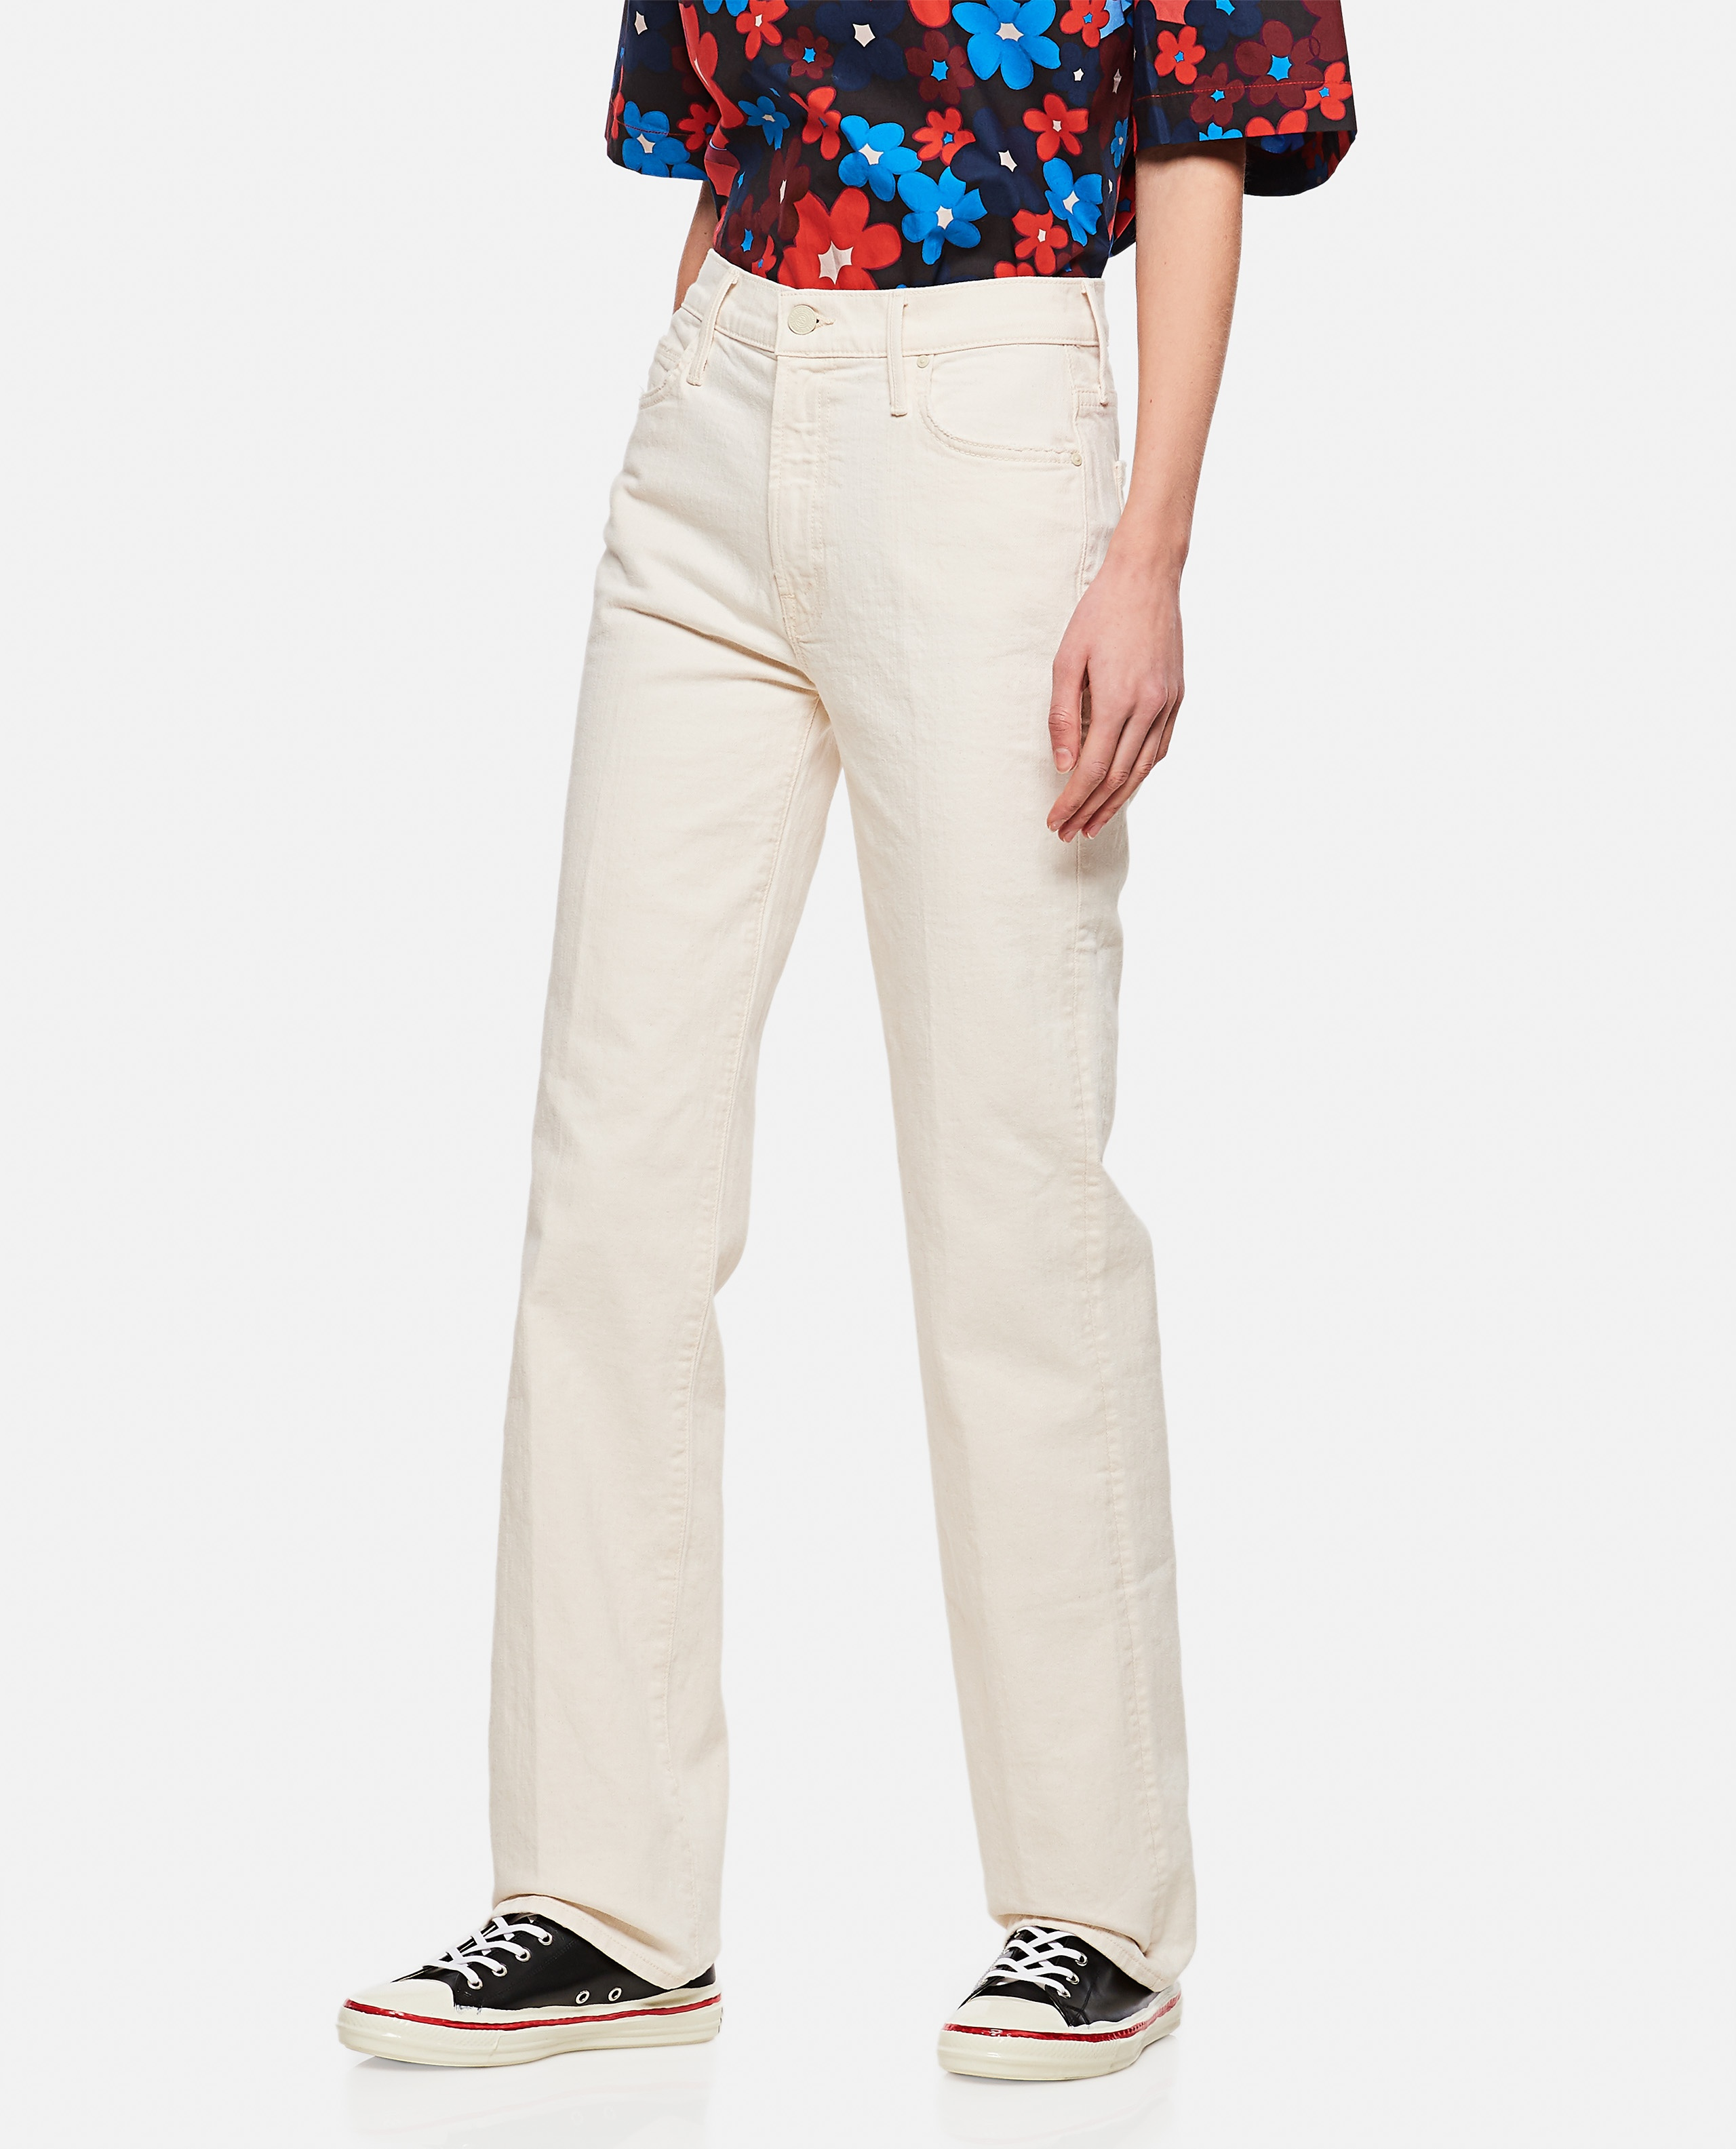 The Kick It Jeans Donna Mother 000289940042708 1